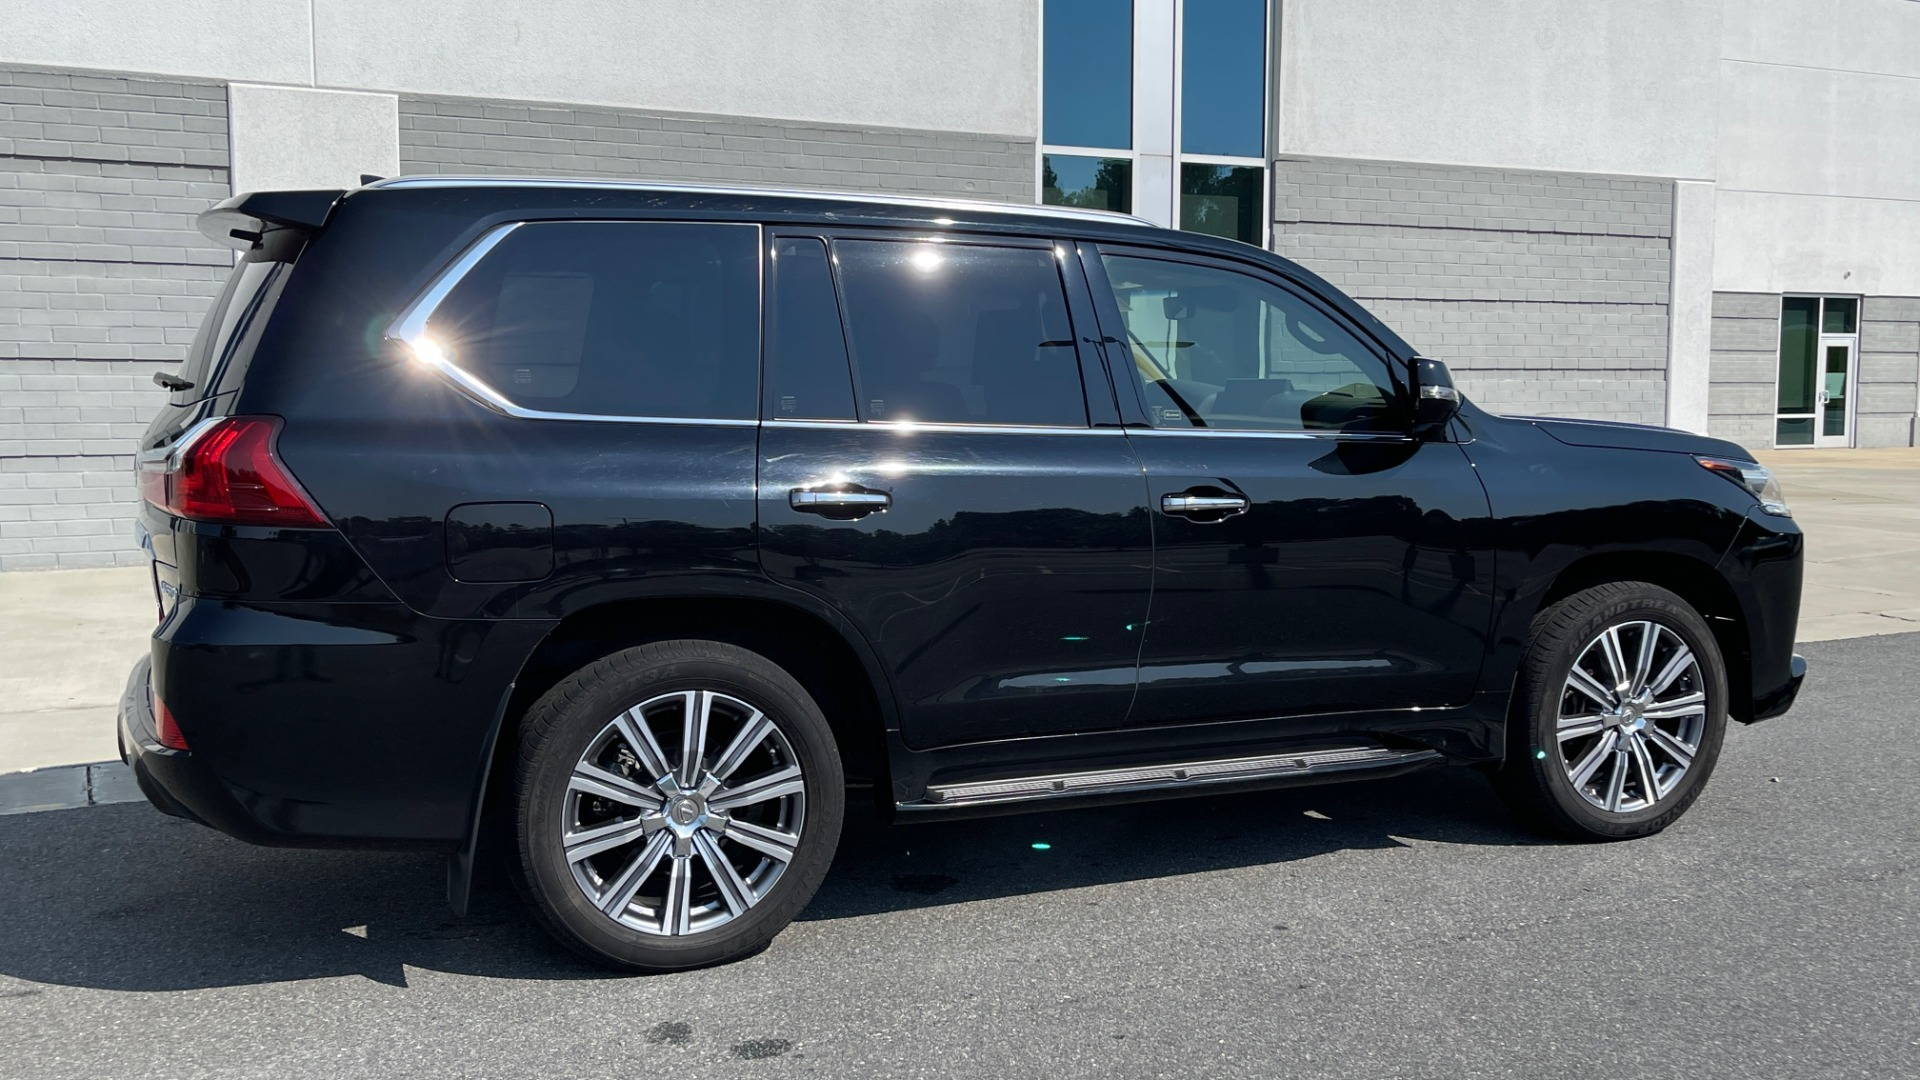 Used 2017 Lexus LX 570 LUXURY / 5.7L V8 / NAV / SUNROOF / 3-ROW / DVD / REARVIEW for sale $63,995 at Formula Imports in Charlotte NC 28227 5